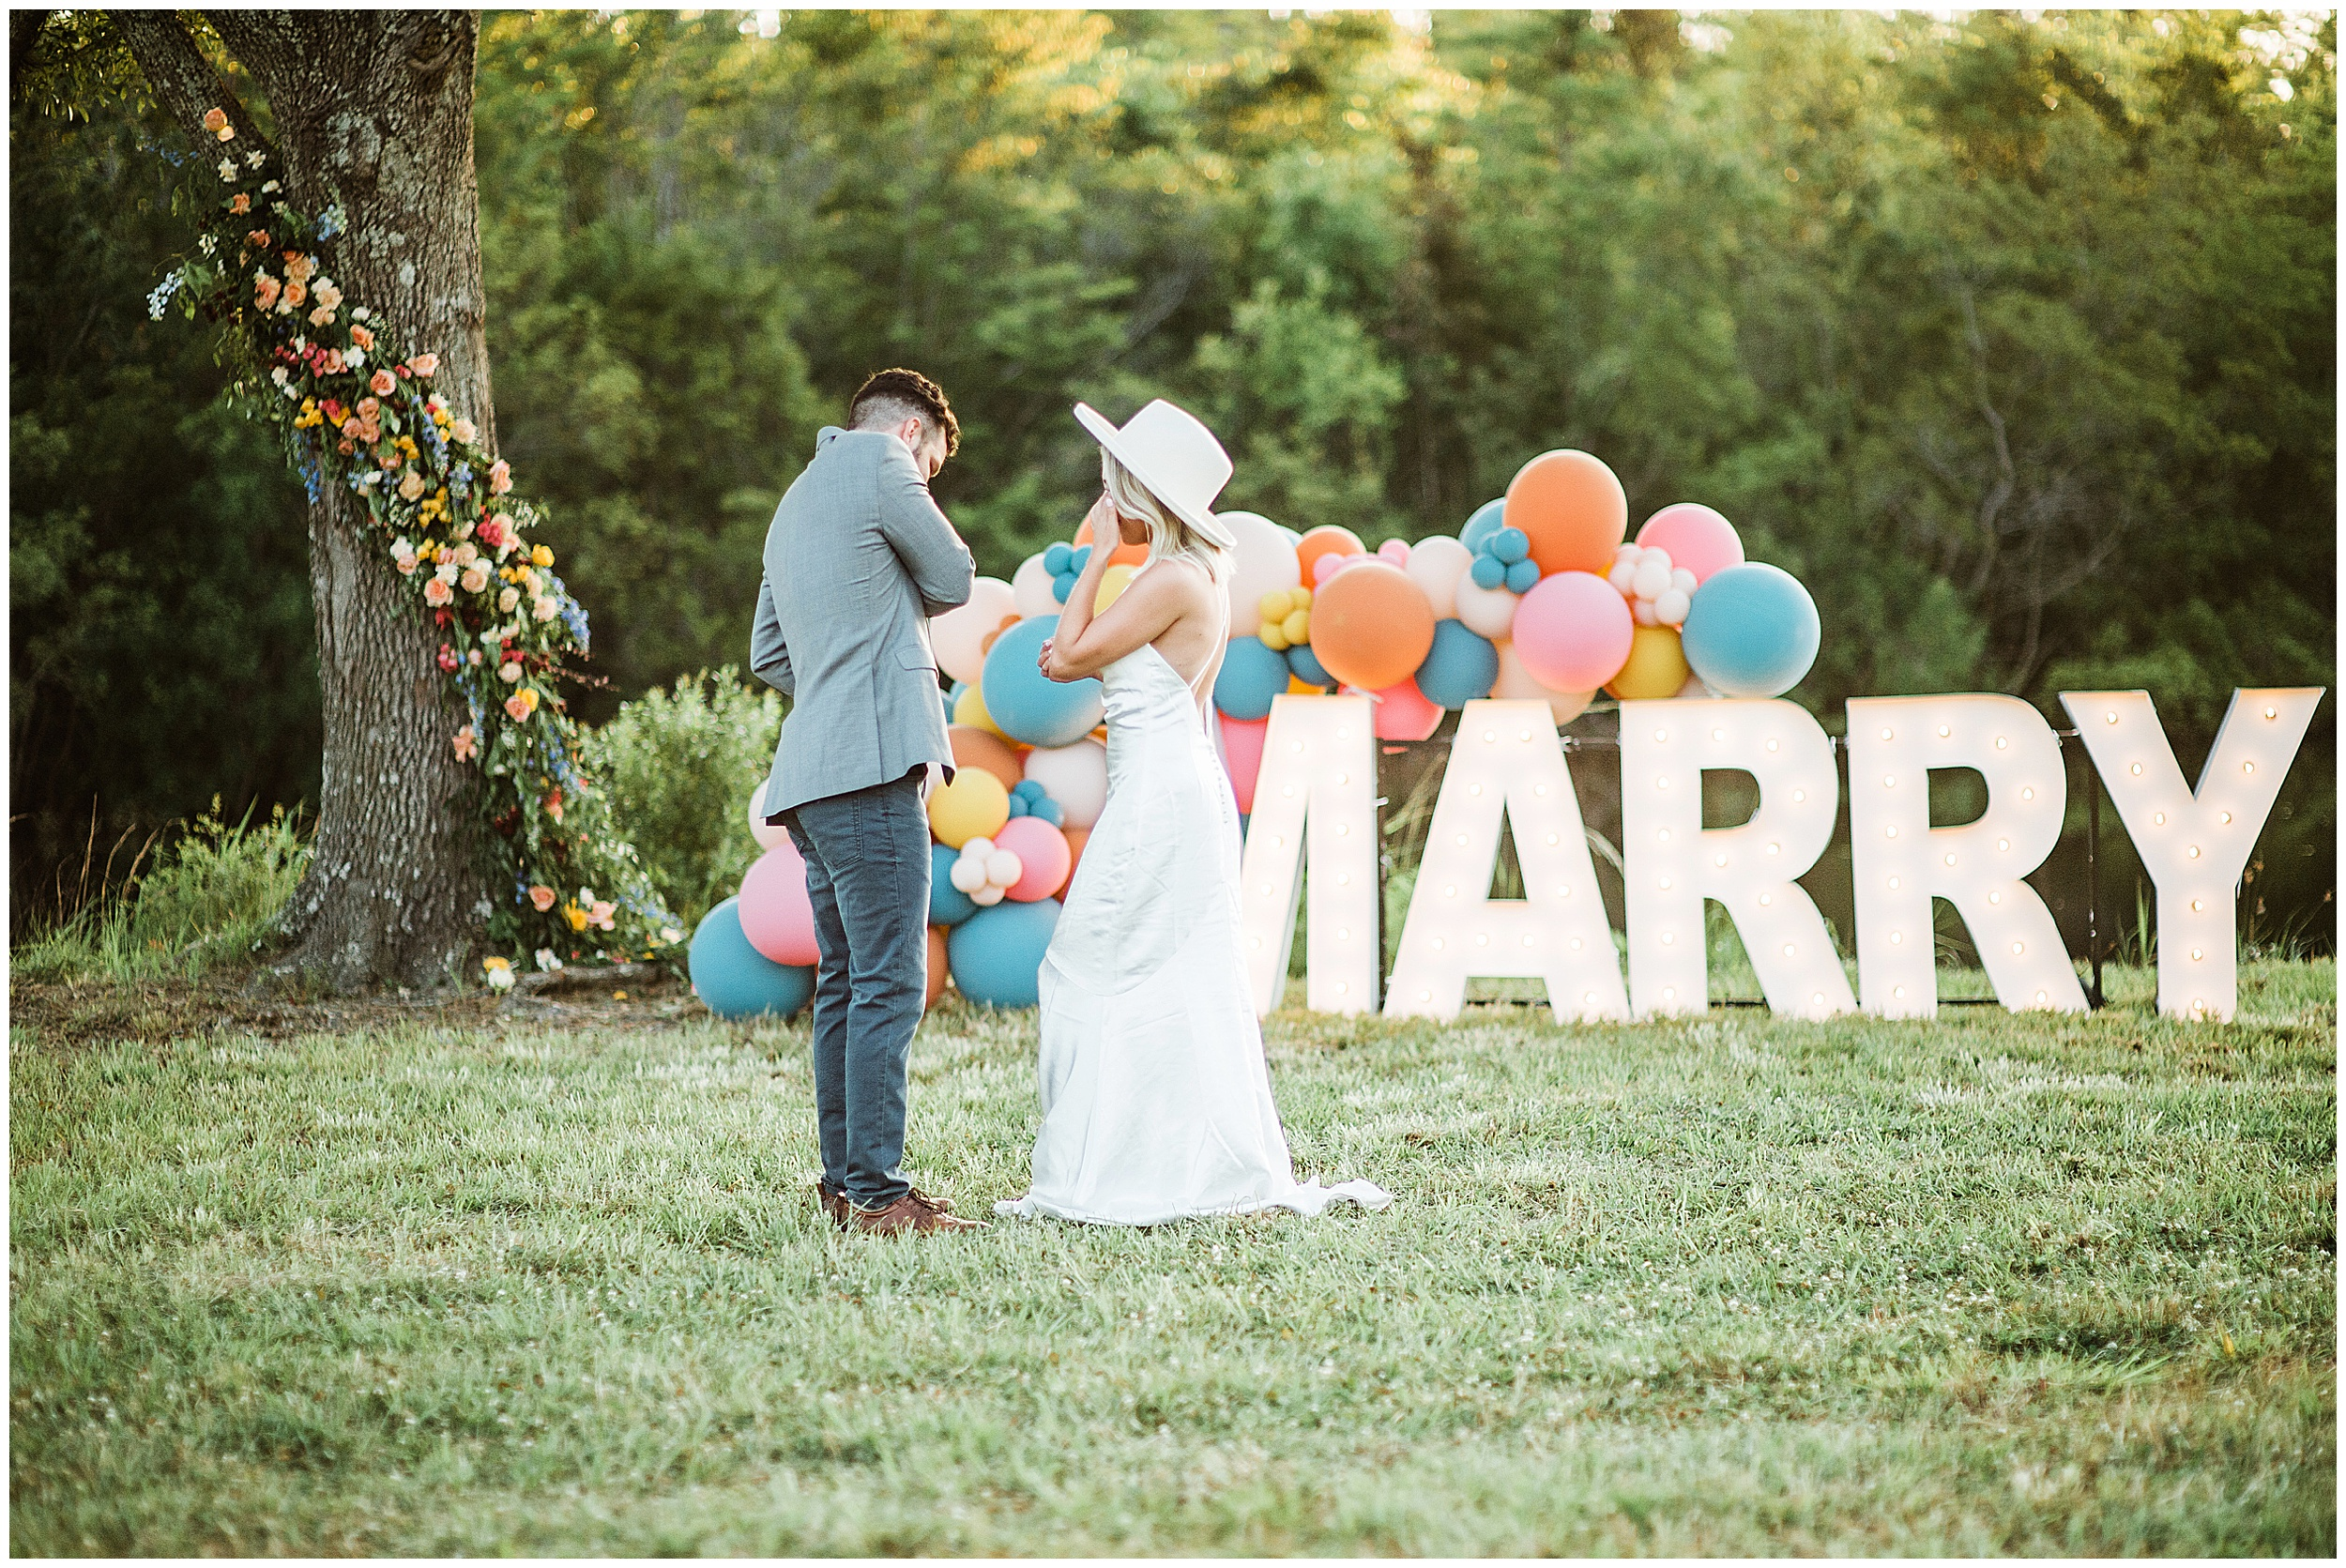 Colorful engagement at The Burch House for Chris Tilley and Kasey Workman